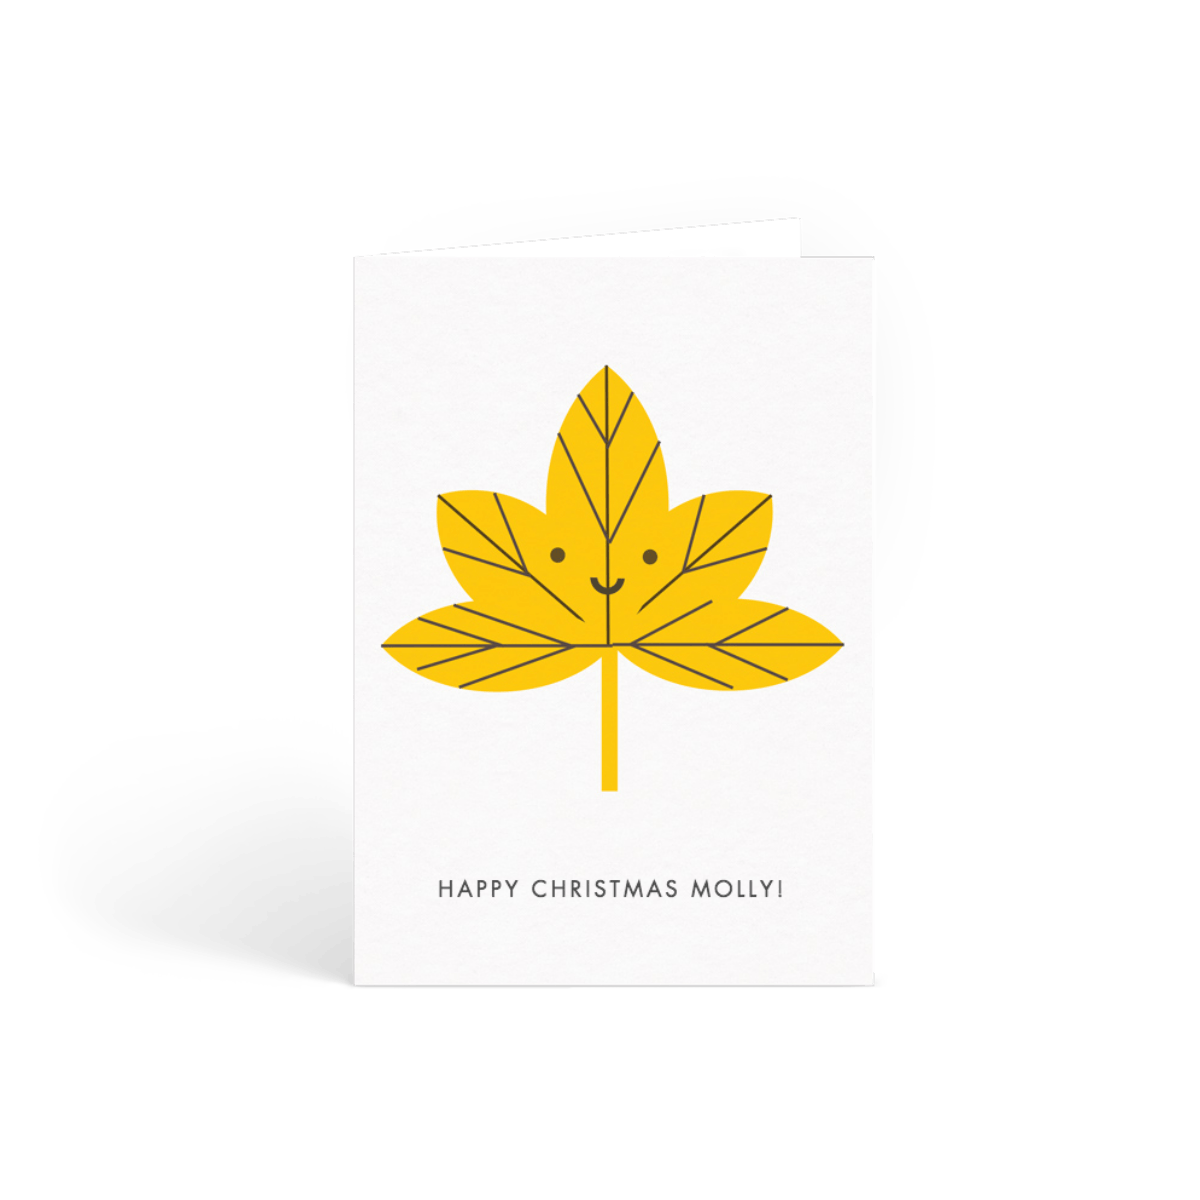 Https%3a%2f%2fwww.papier.com%2fproduct image%2f31219%2f2%2fautumn leaf 7841 front 1541411905.png?ixlib=rb 1.1